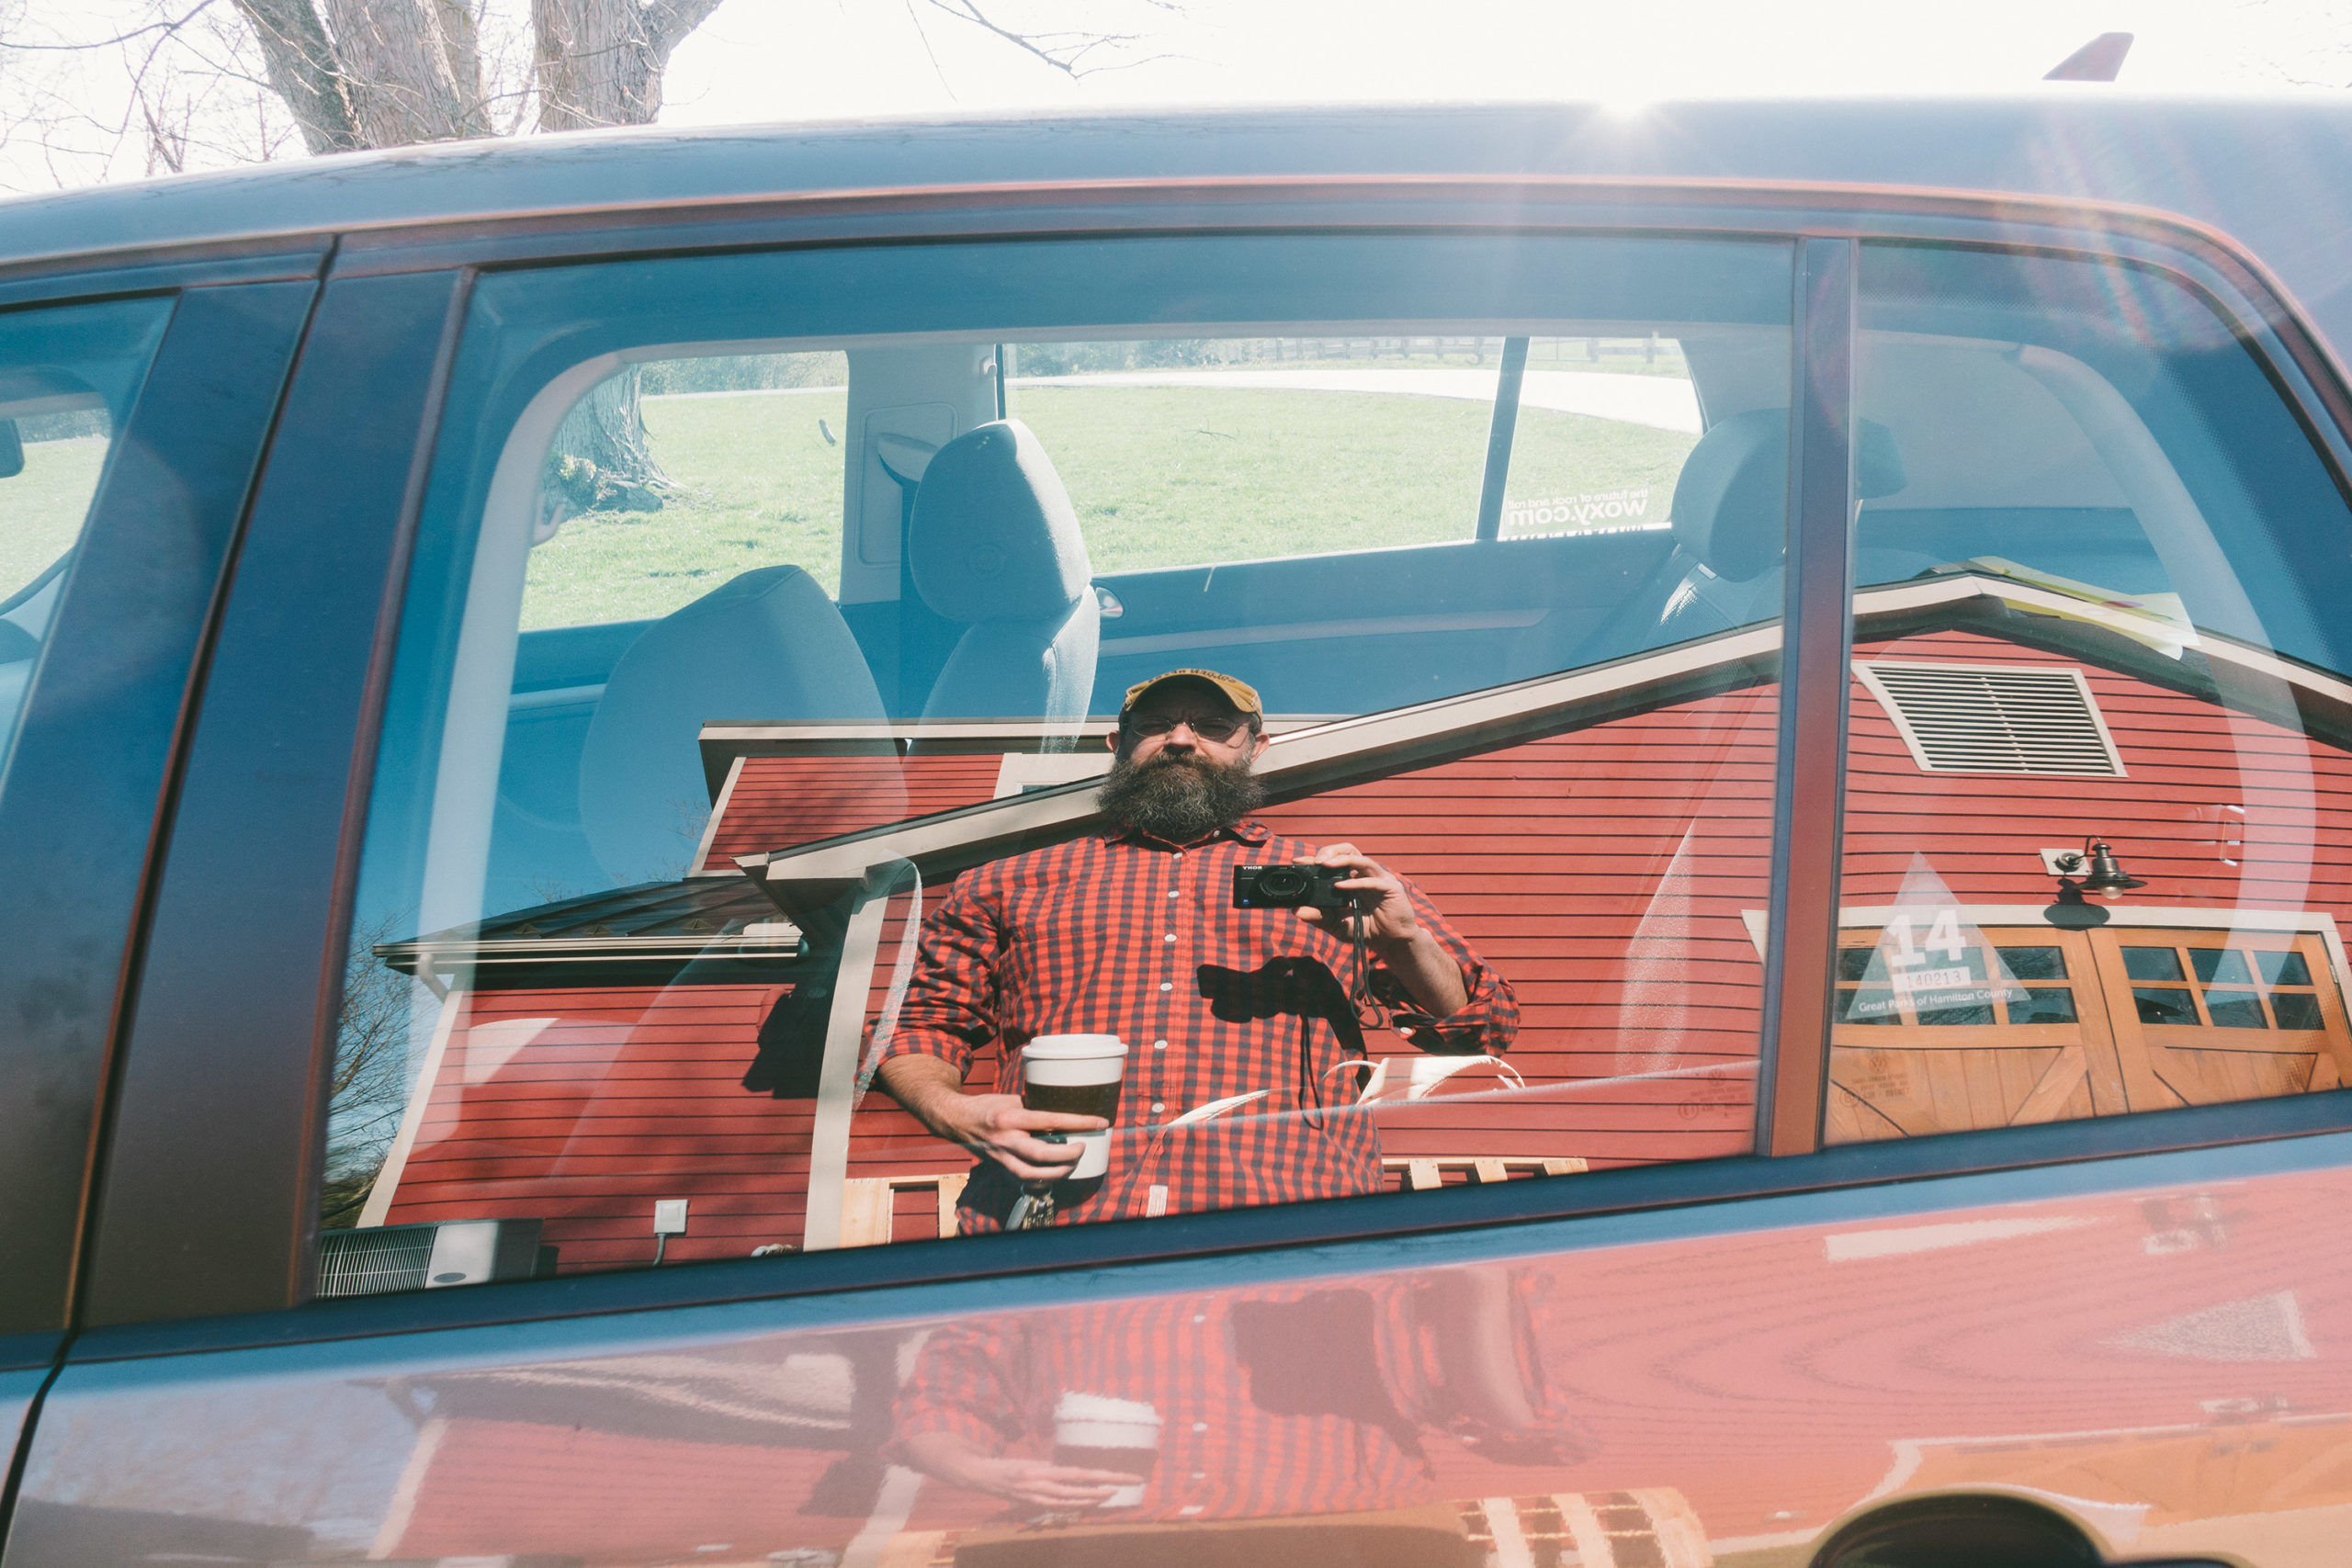 A man taking a selfie in the reflection of a car window